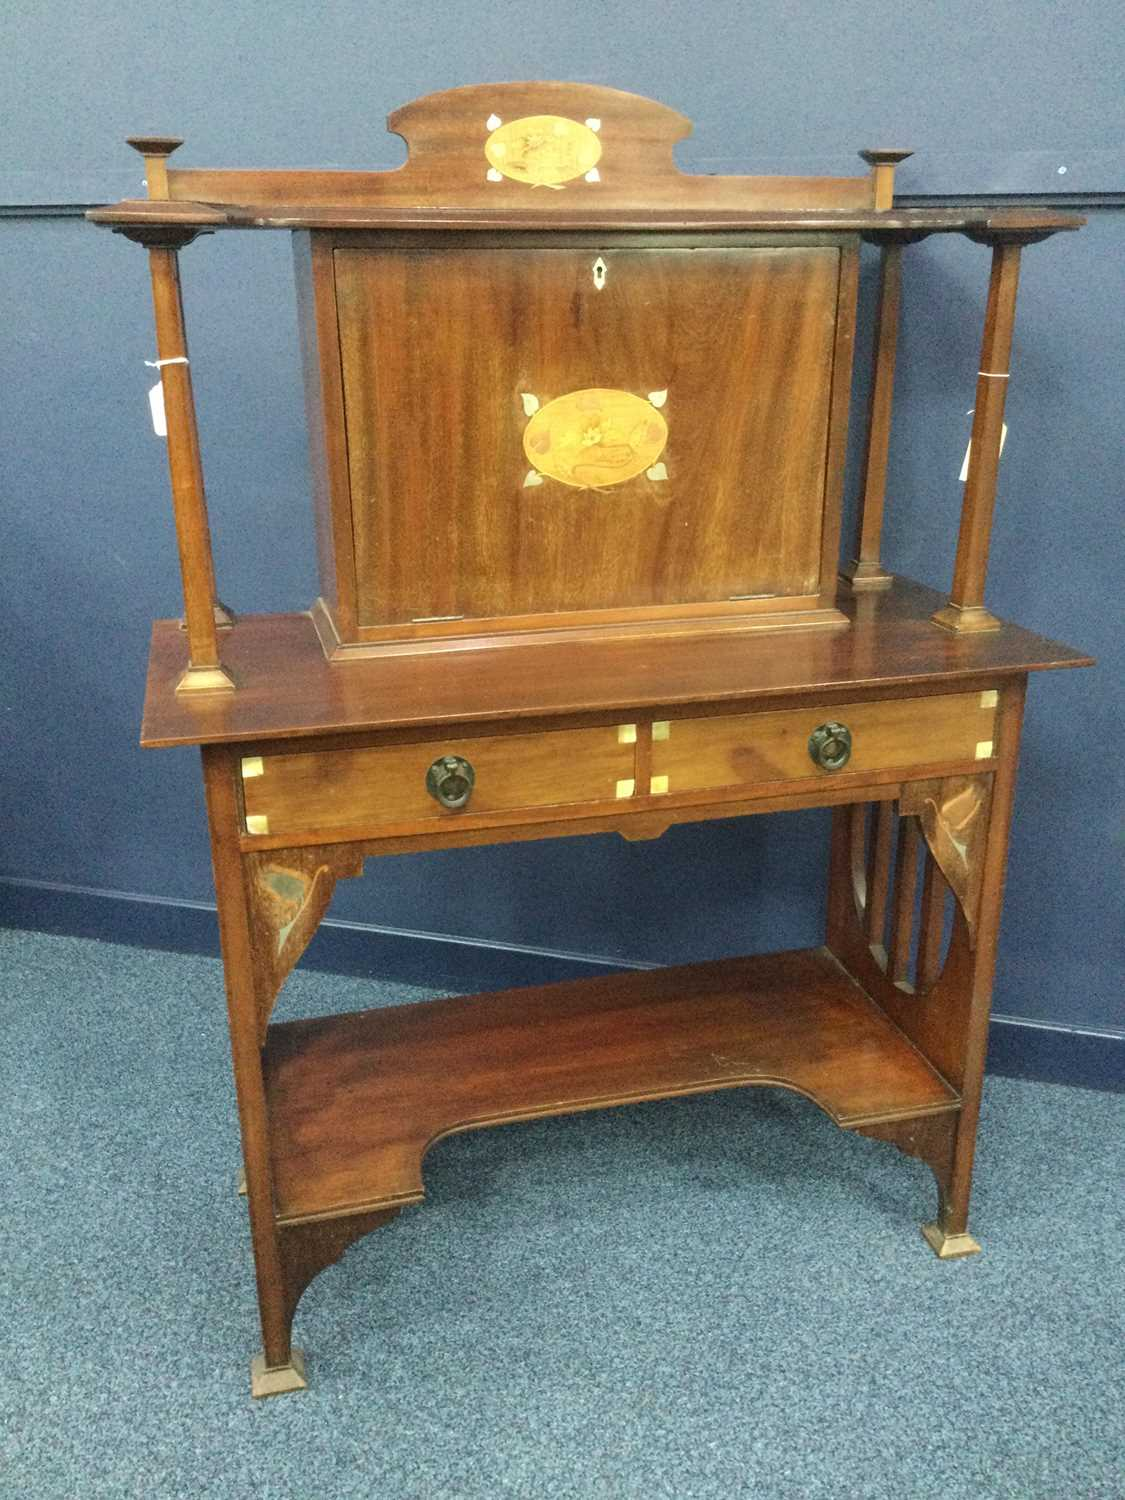 Lot 1351 - AN EARLY 20TH CENTURY ARTS & CRAFTS MAHOGANY SECRETAIRE ATTRIBUTED TO GEORGE WALTON